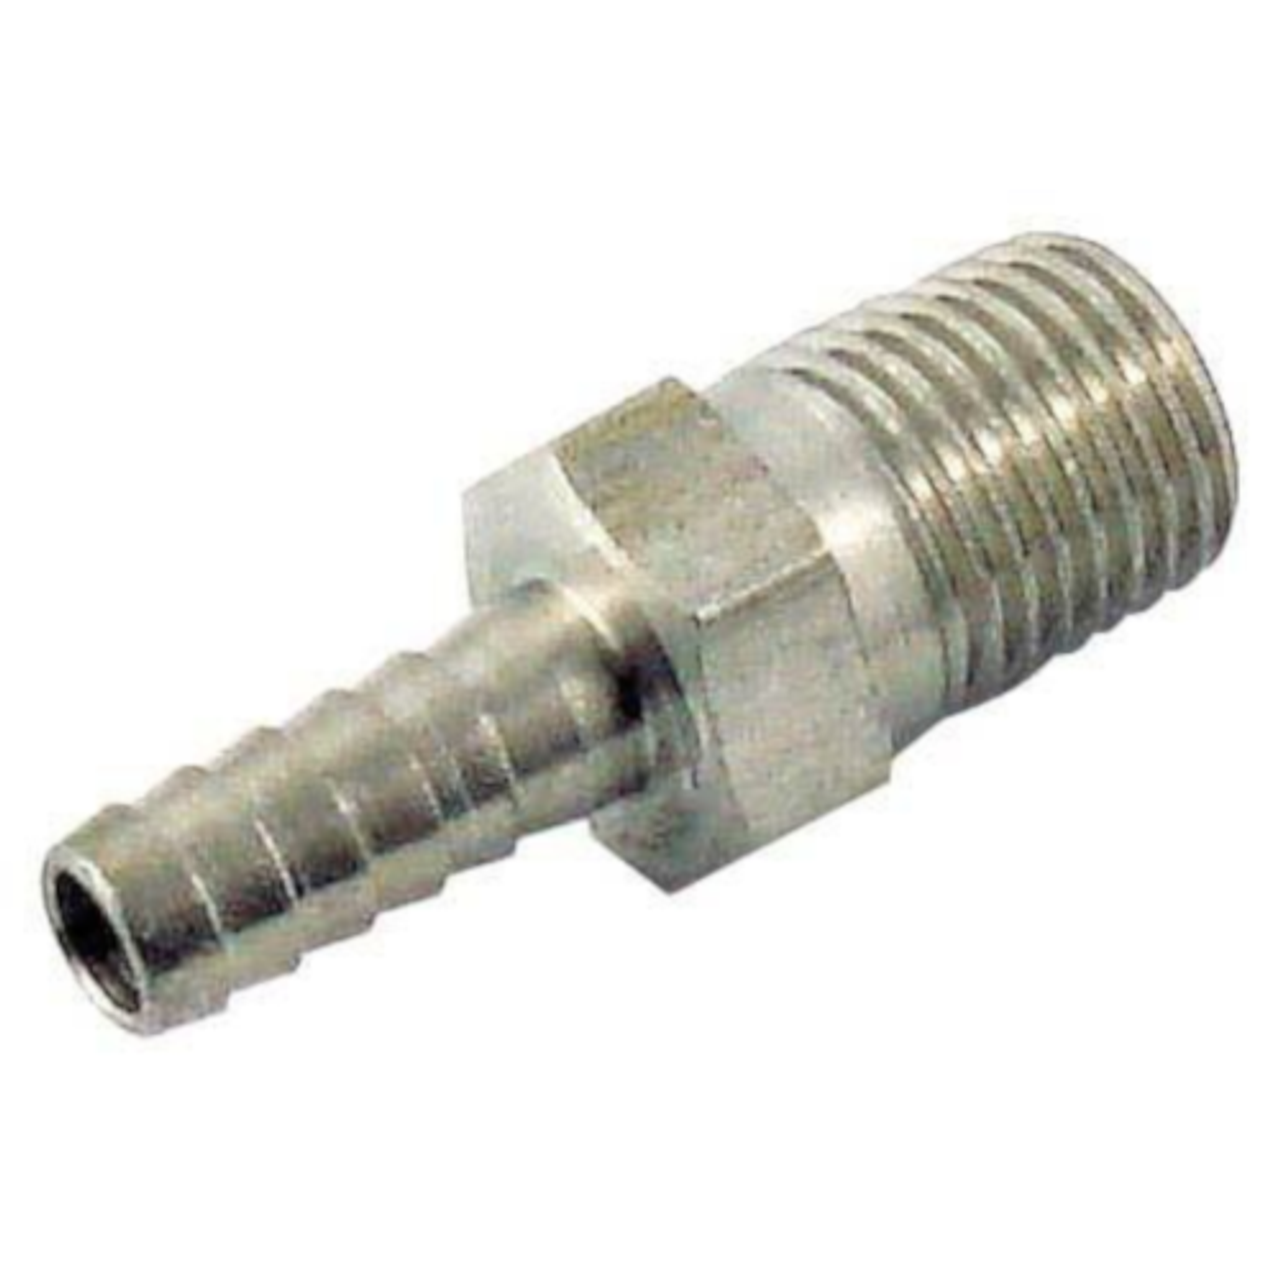 Hose Stems & Other Misc Hardware